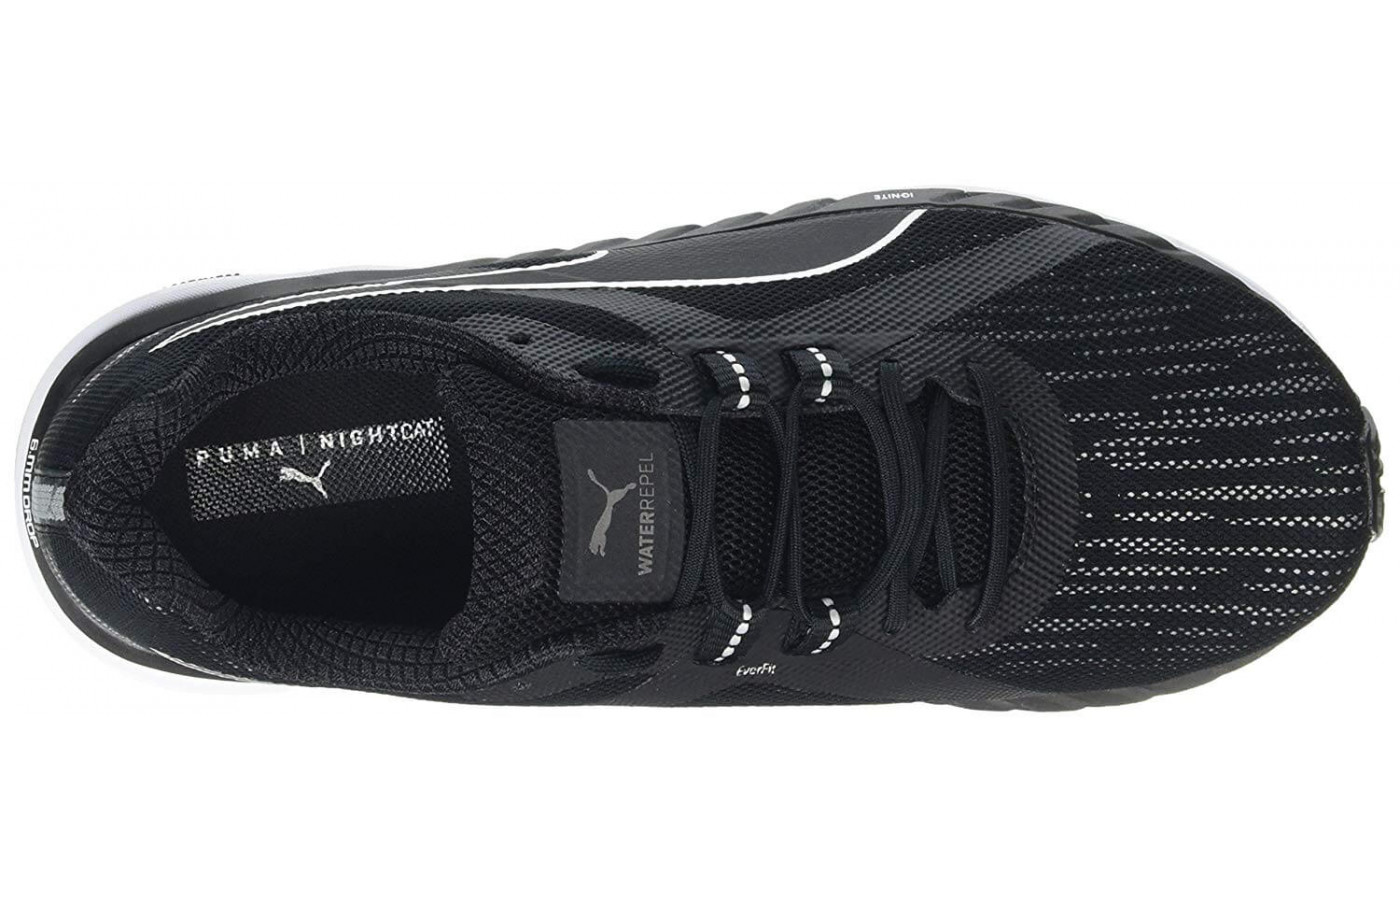 A top view of the Puma Speed 500 Ignite Nightcat.